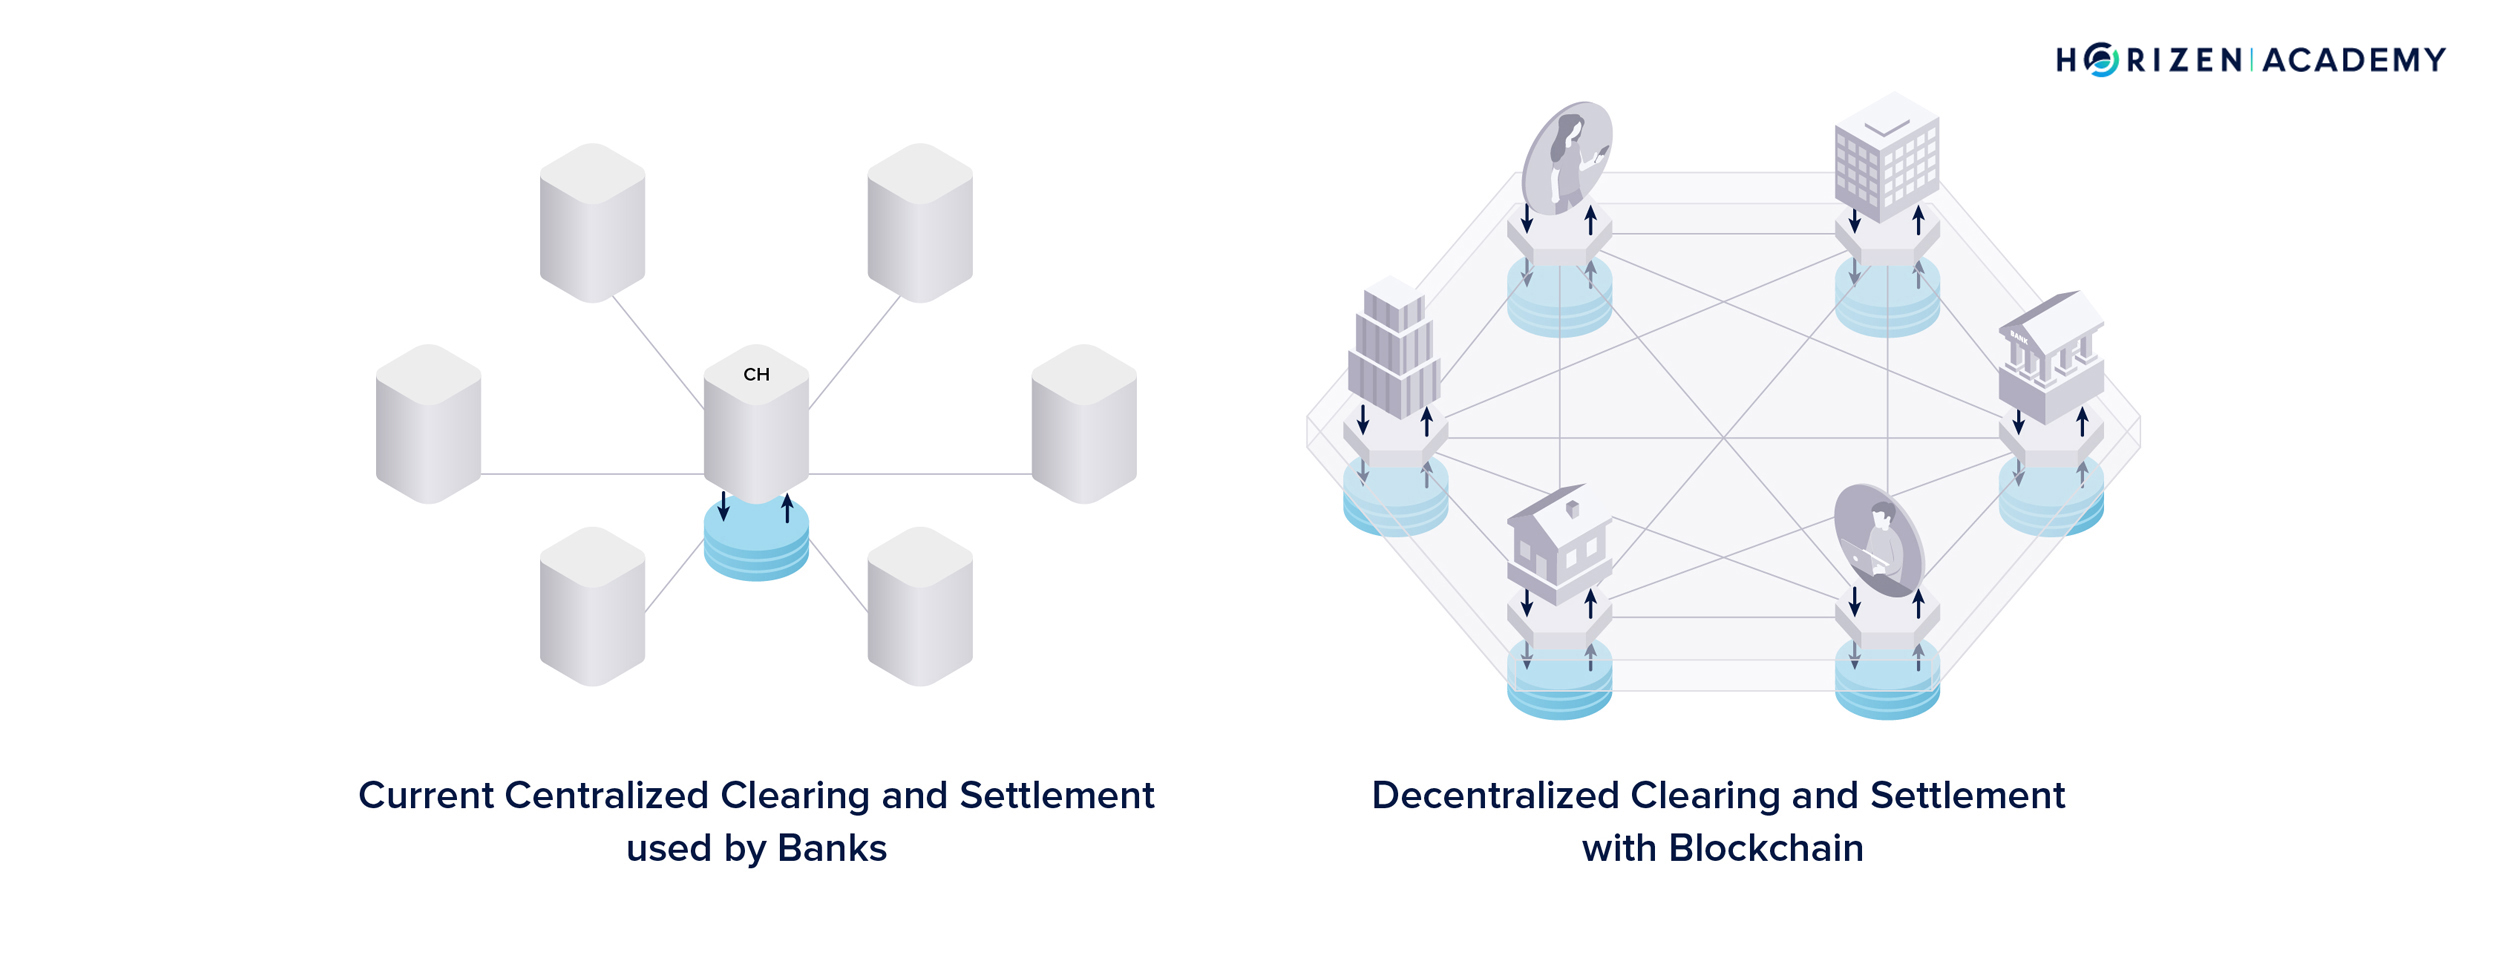 Decentralised clearing